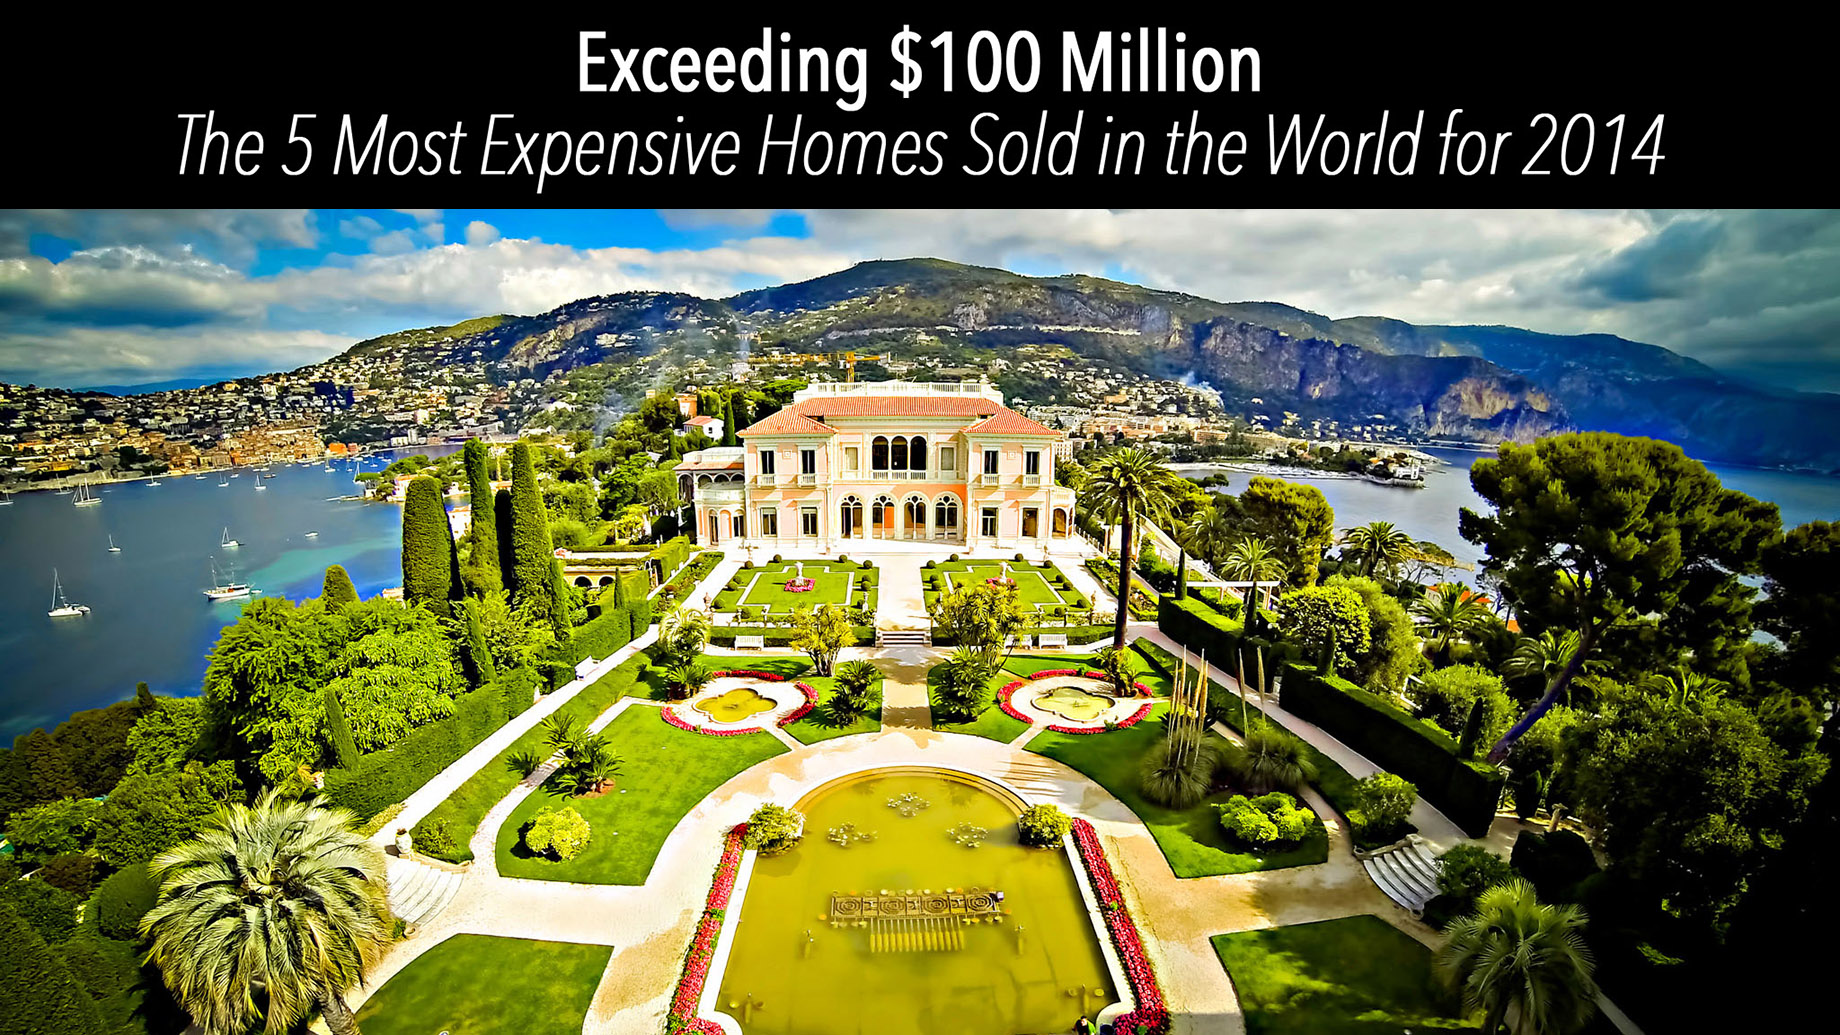 Exceeding $100 Million - The 5 Most Expensive Homes Sold in the World